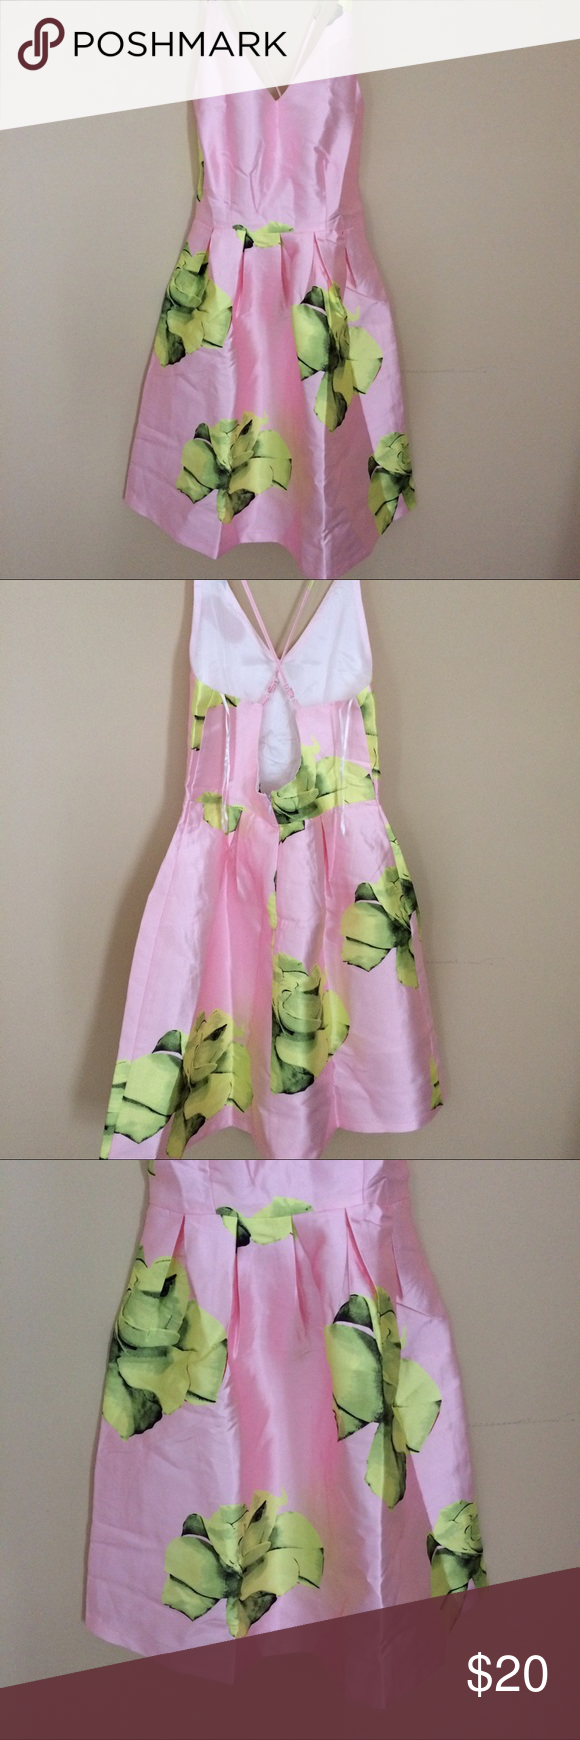 Beautiful pink and yellow floral dress Beautiful pink spaghetti strap dress with yellow floral design. Size small. Perfect for a special occasion or a night out this summer. Dresses